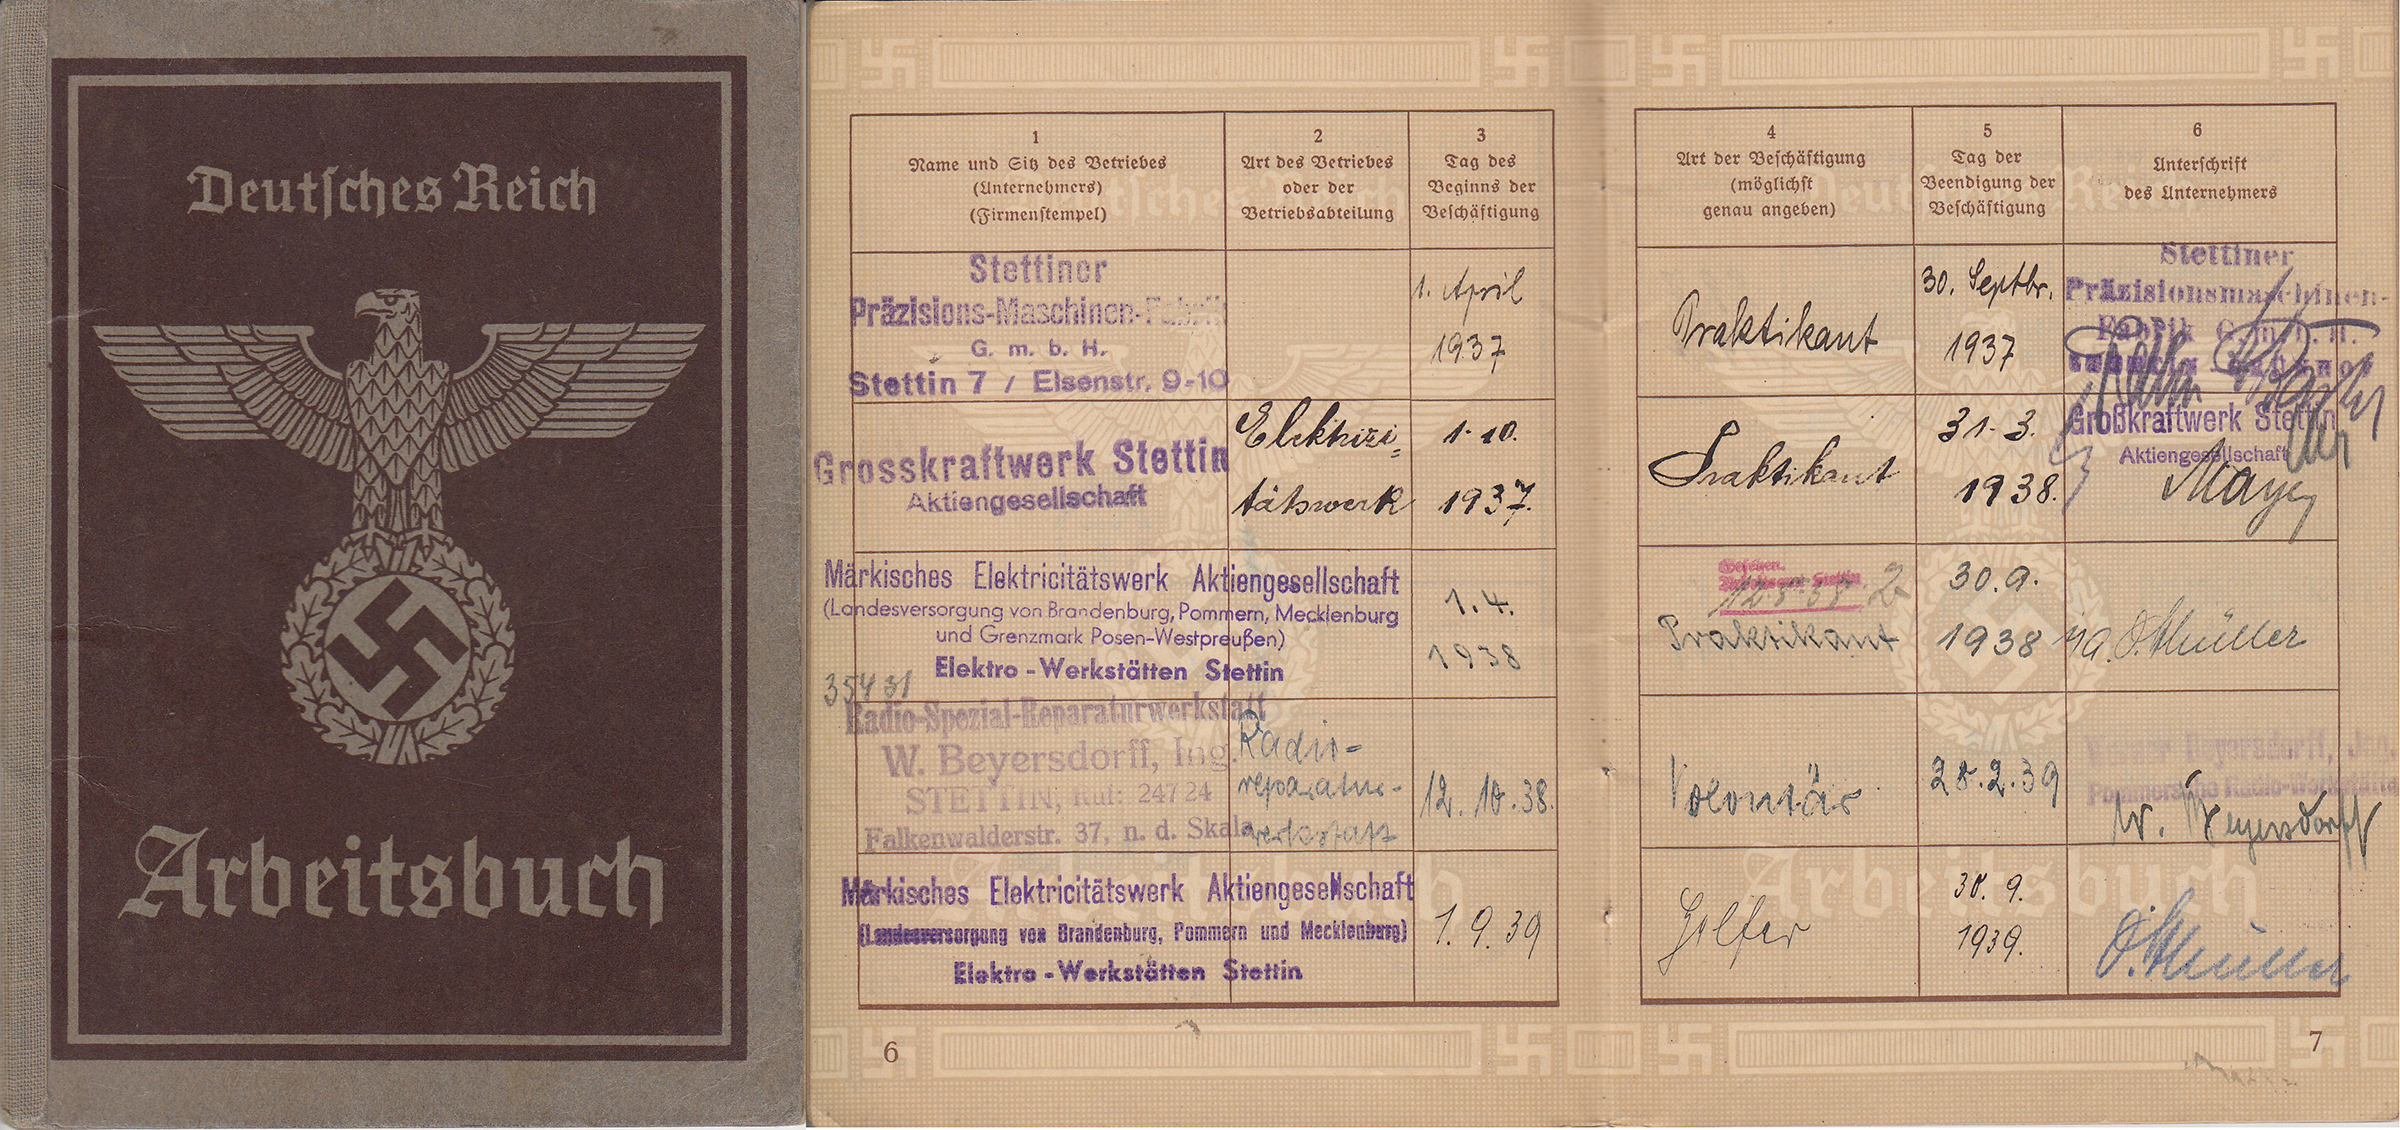 Berndt's Arbeitsbuch (Labor Book), listing places of employment (Box 1, File 8)